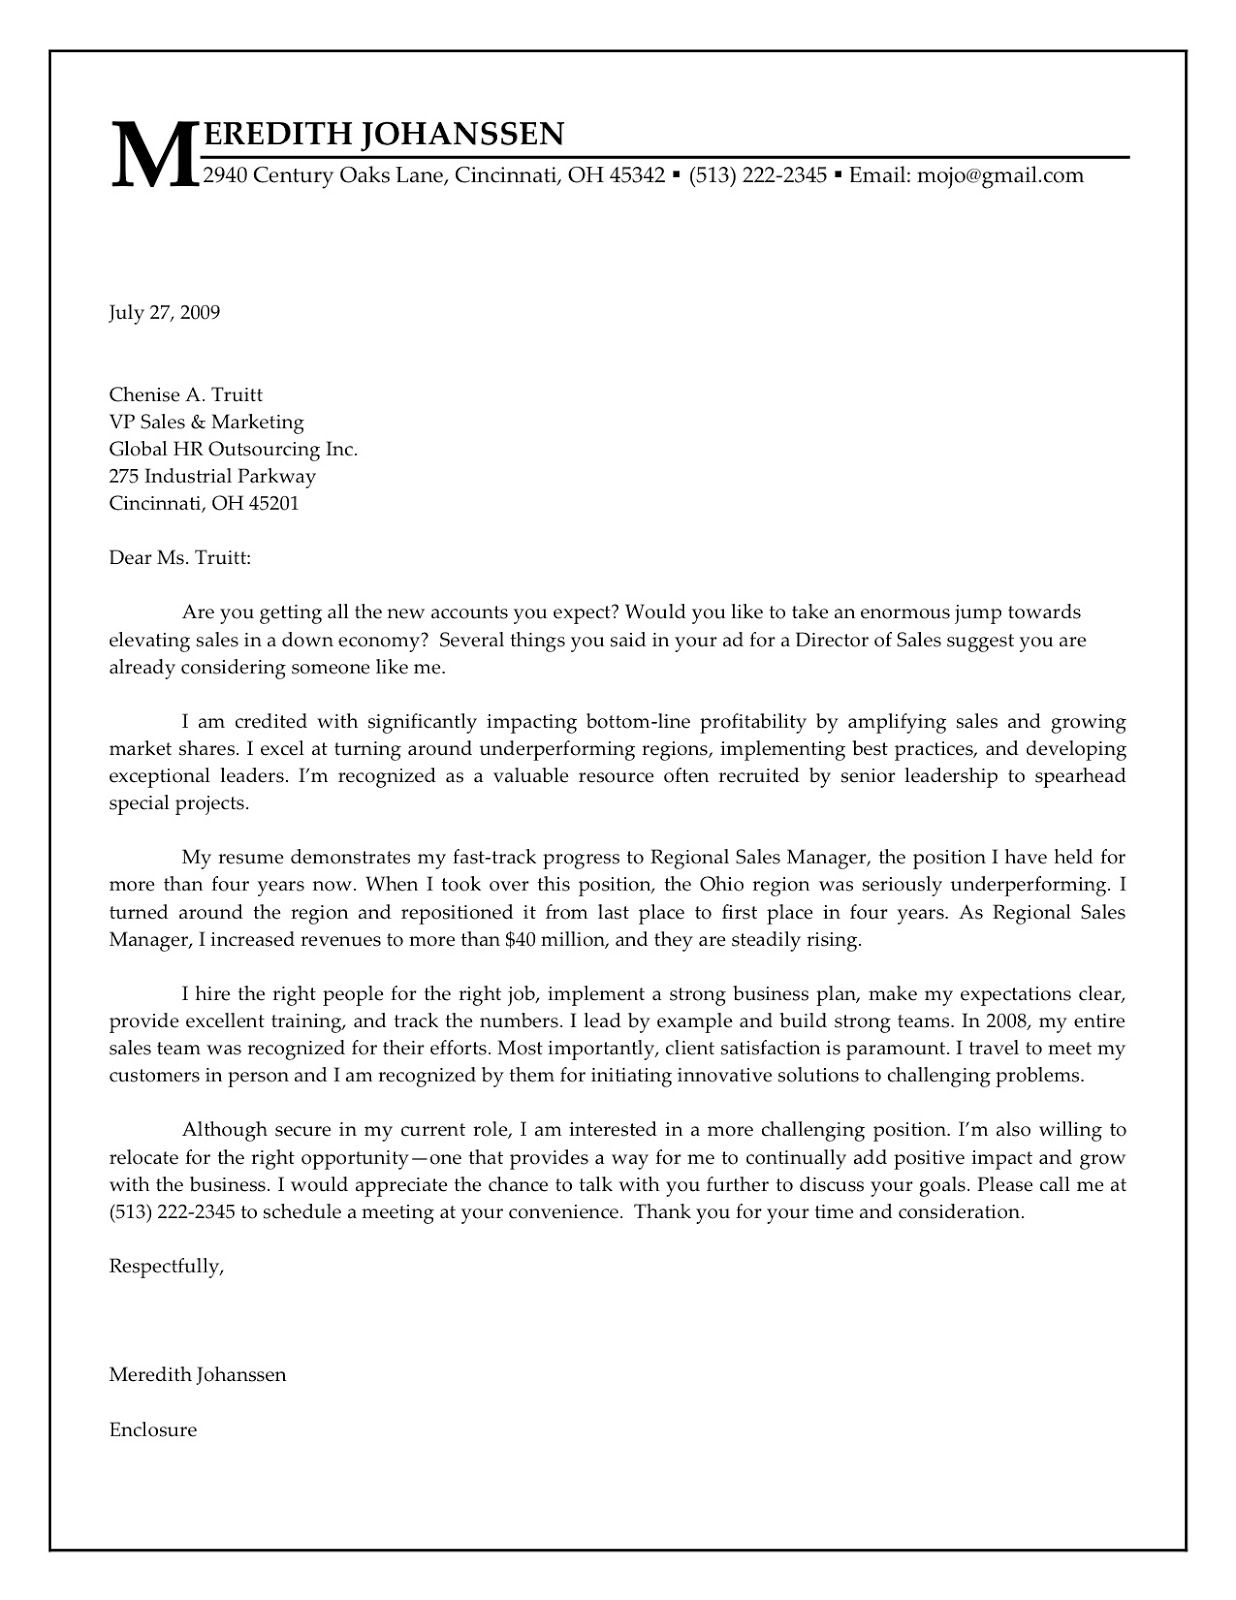 English Letter Format Pdf Images Samples Image Collections